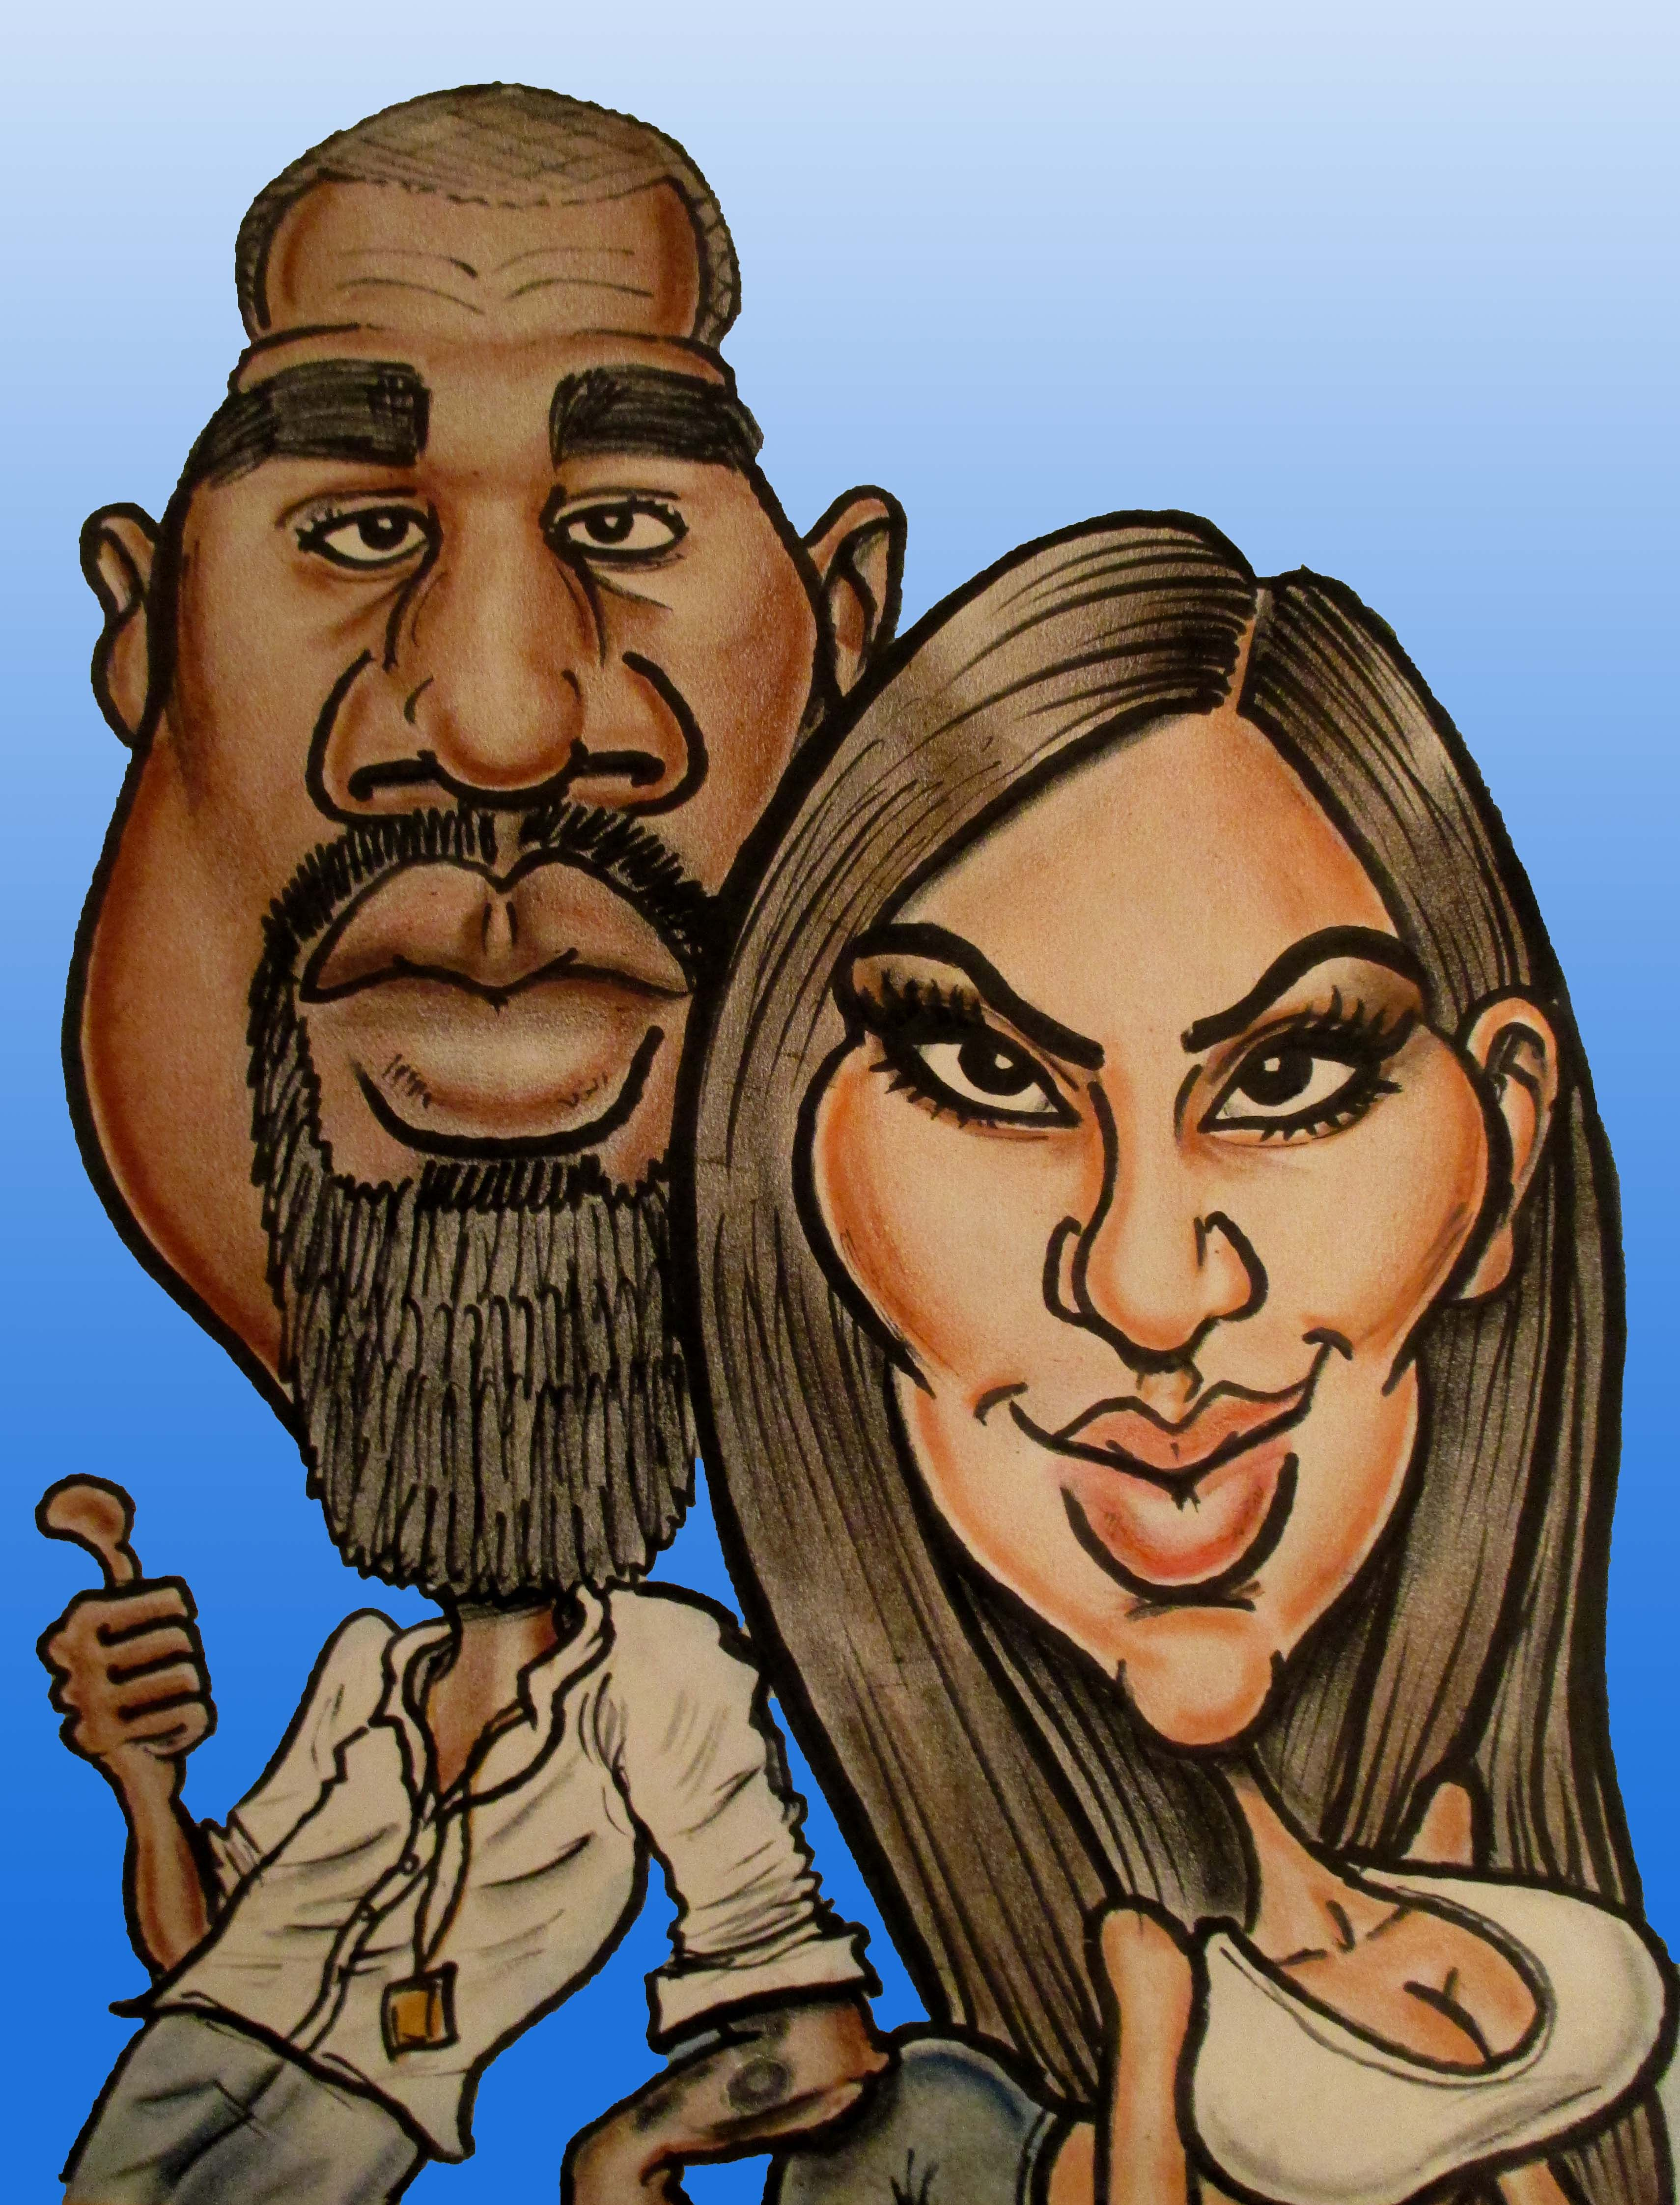 Kim And Kanye West Caricature In 2020 Caricature Kim And Kanye Portrait Tattoo